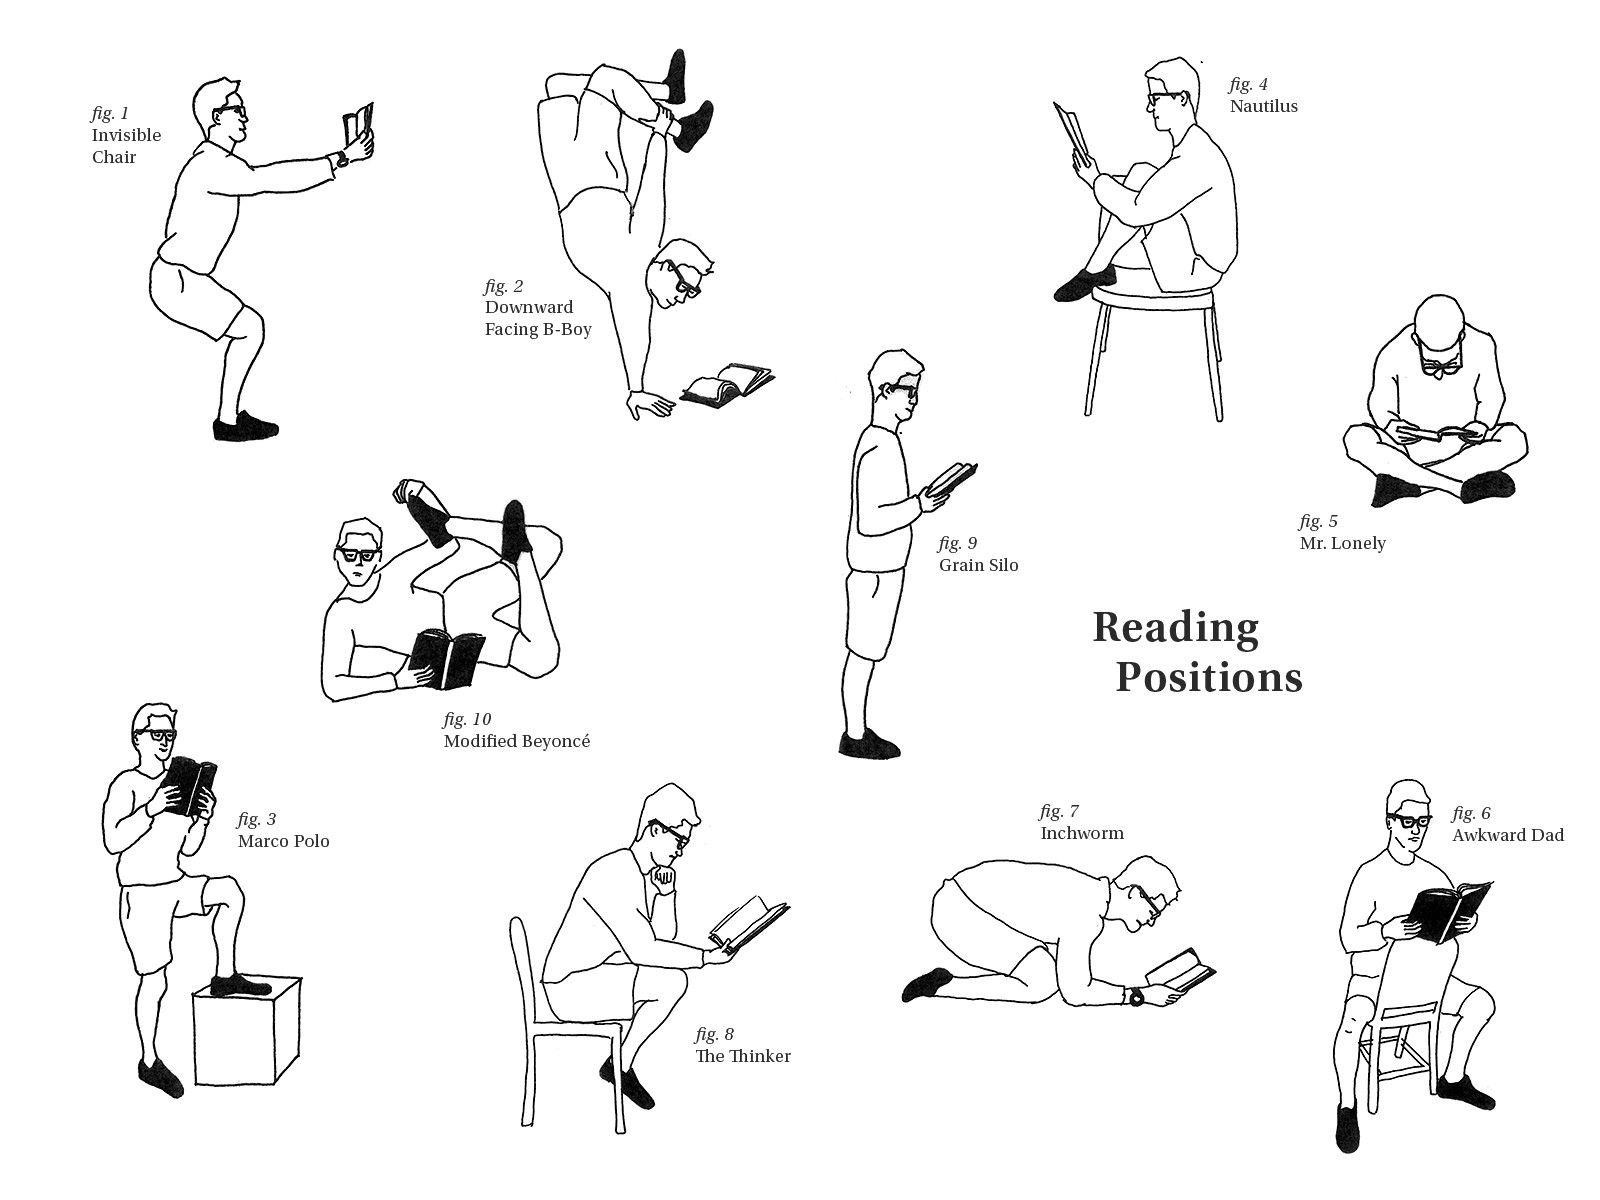 INSTRUCTIONS: 1. Stretch 2. Grasp book 3. Assume position (see above) 4. Hold position for required amount of time 5. Cool down Art: Patrick Kearns